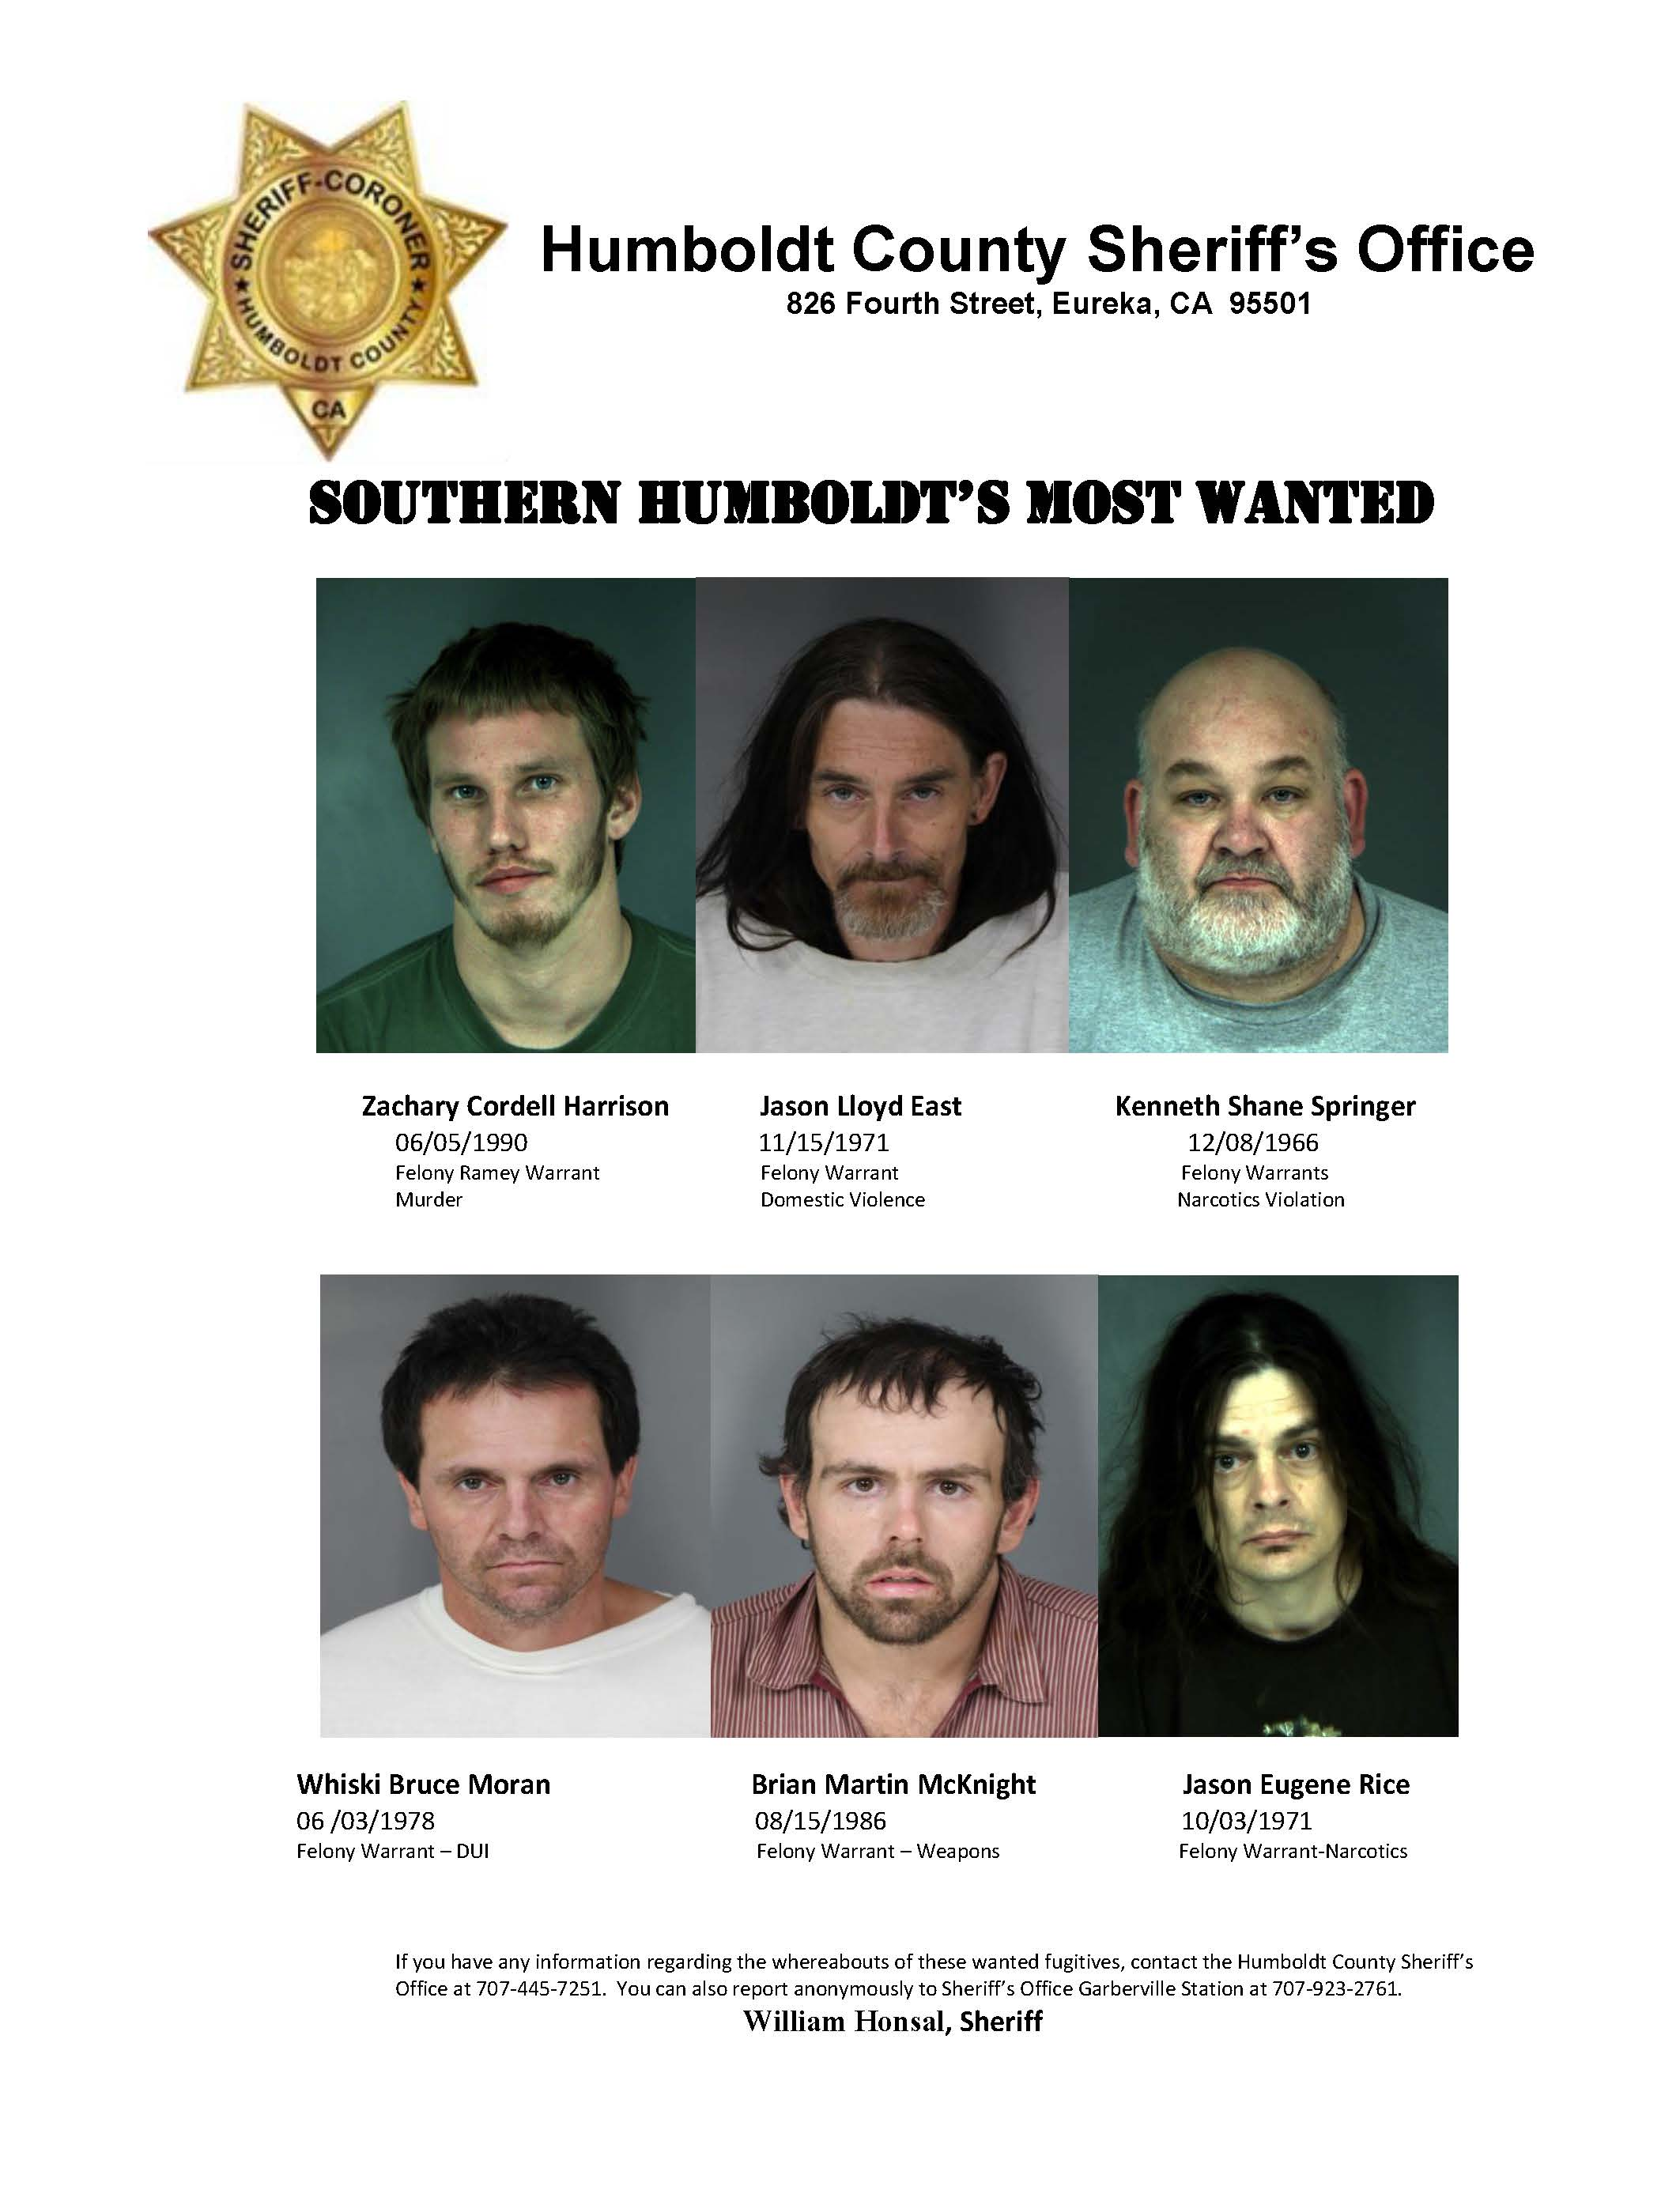 Most Wanted | Humboldt County, CA - Official Website